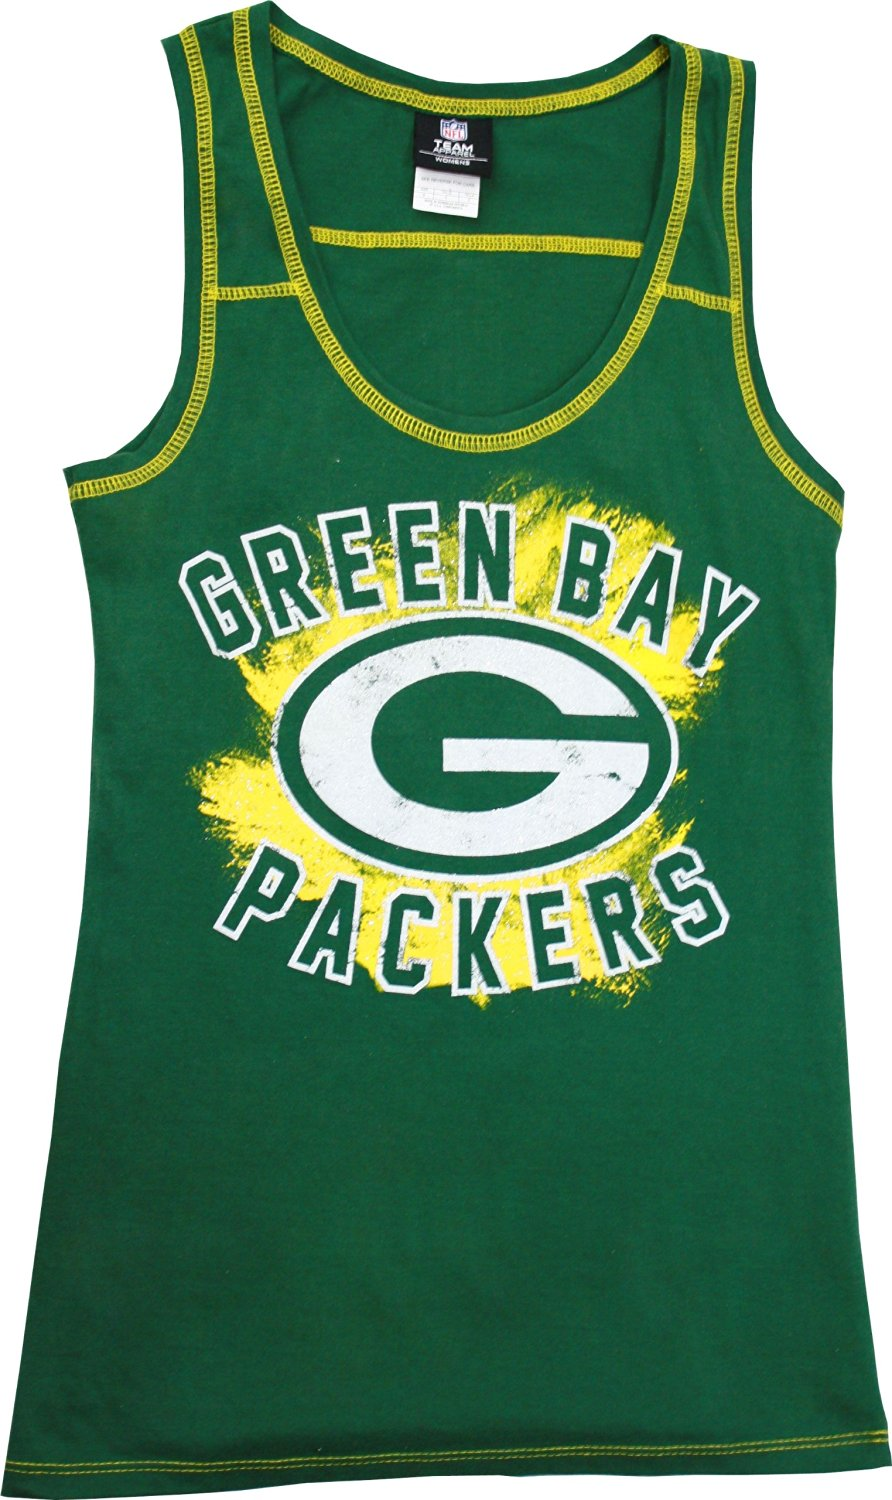 18dc82f136a Buy Green Bay Packers Womens Tank Top in Cheap Price on Alibaba.com